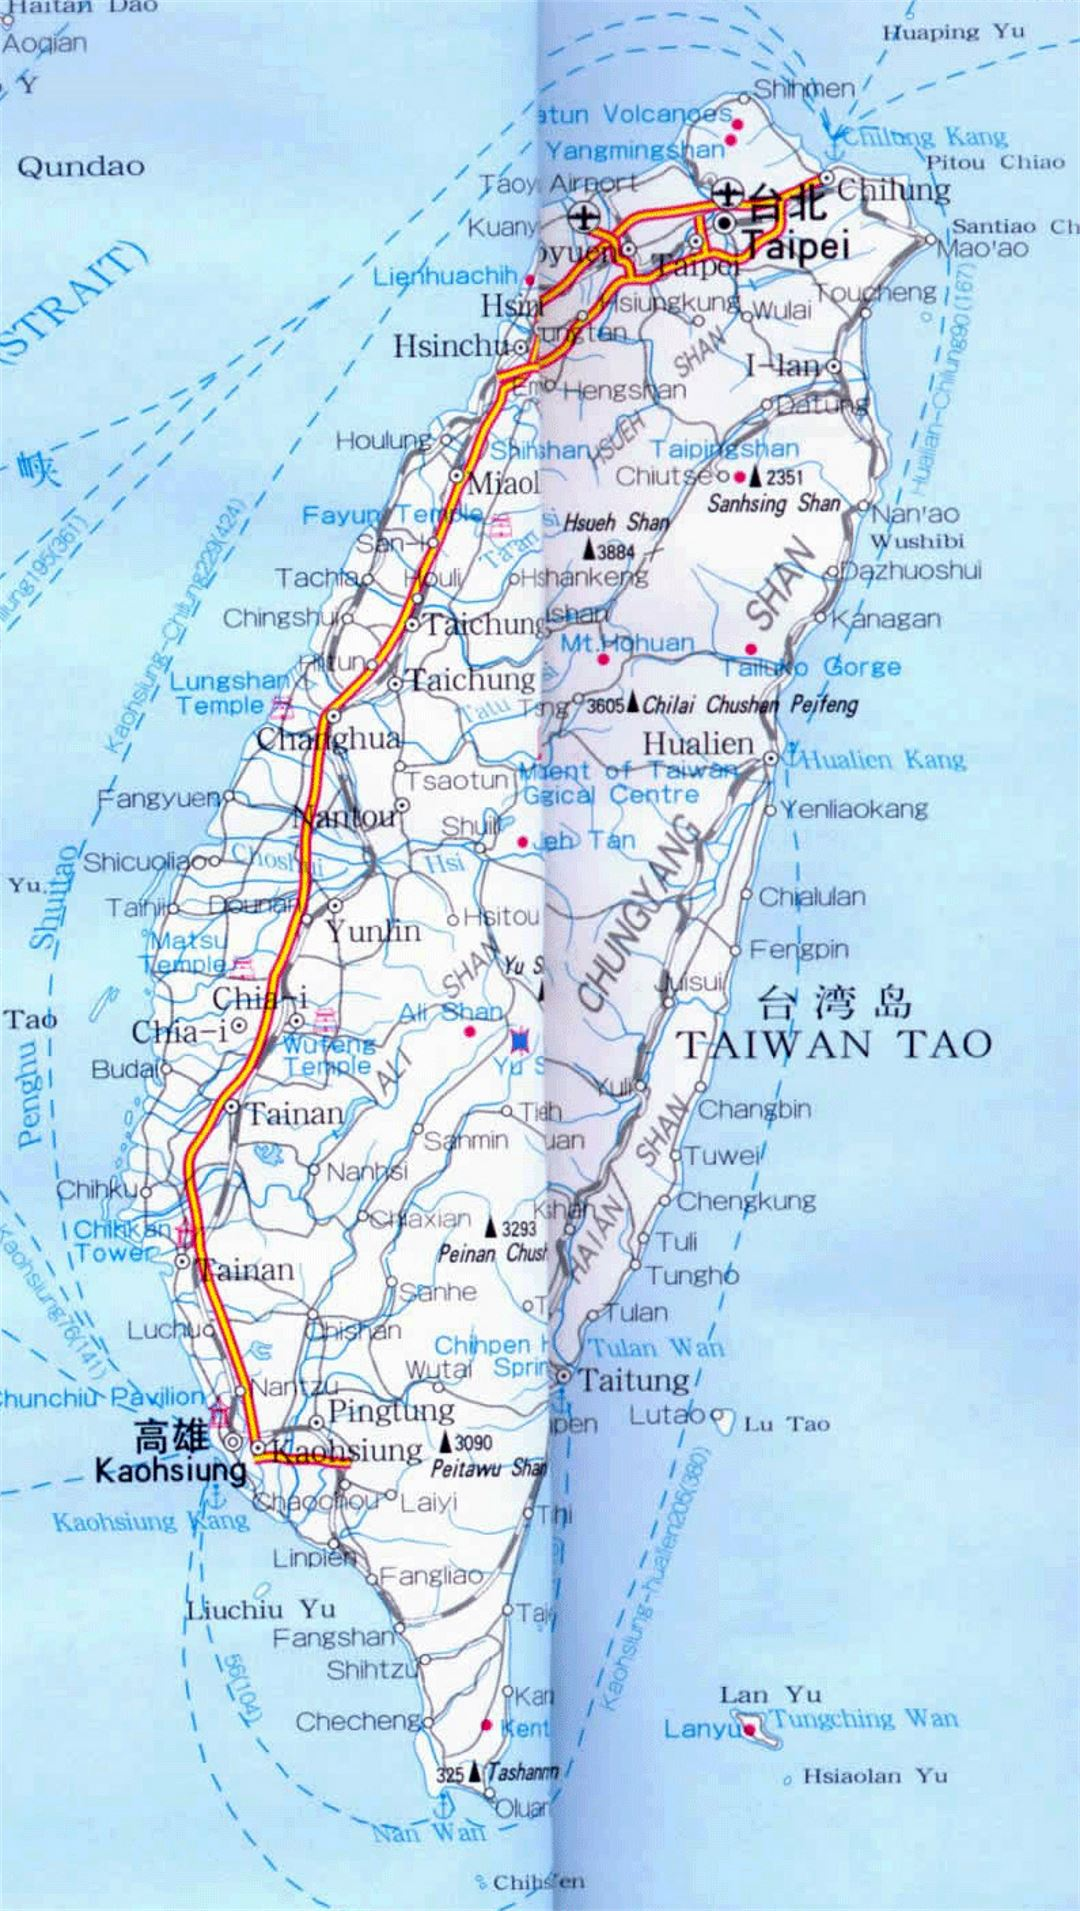 Detailed road map of Taiwan with cities and airports